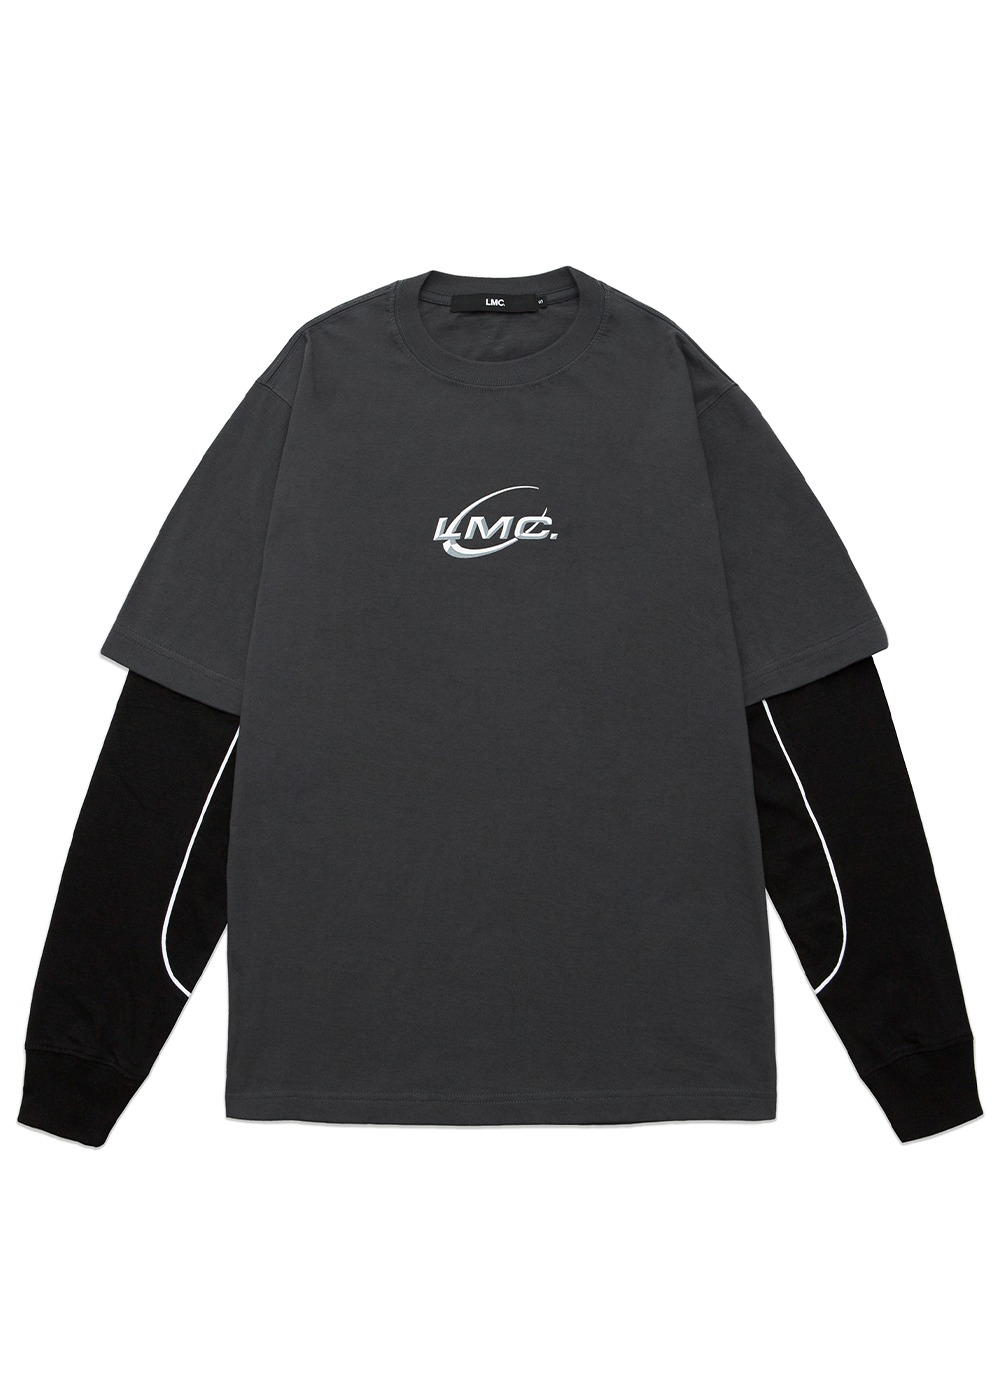 LMC PIPE LINE LAYERED LONG SLV TEE dk gray